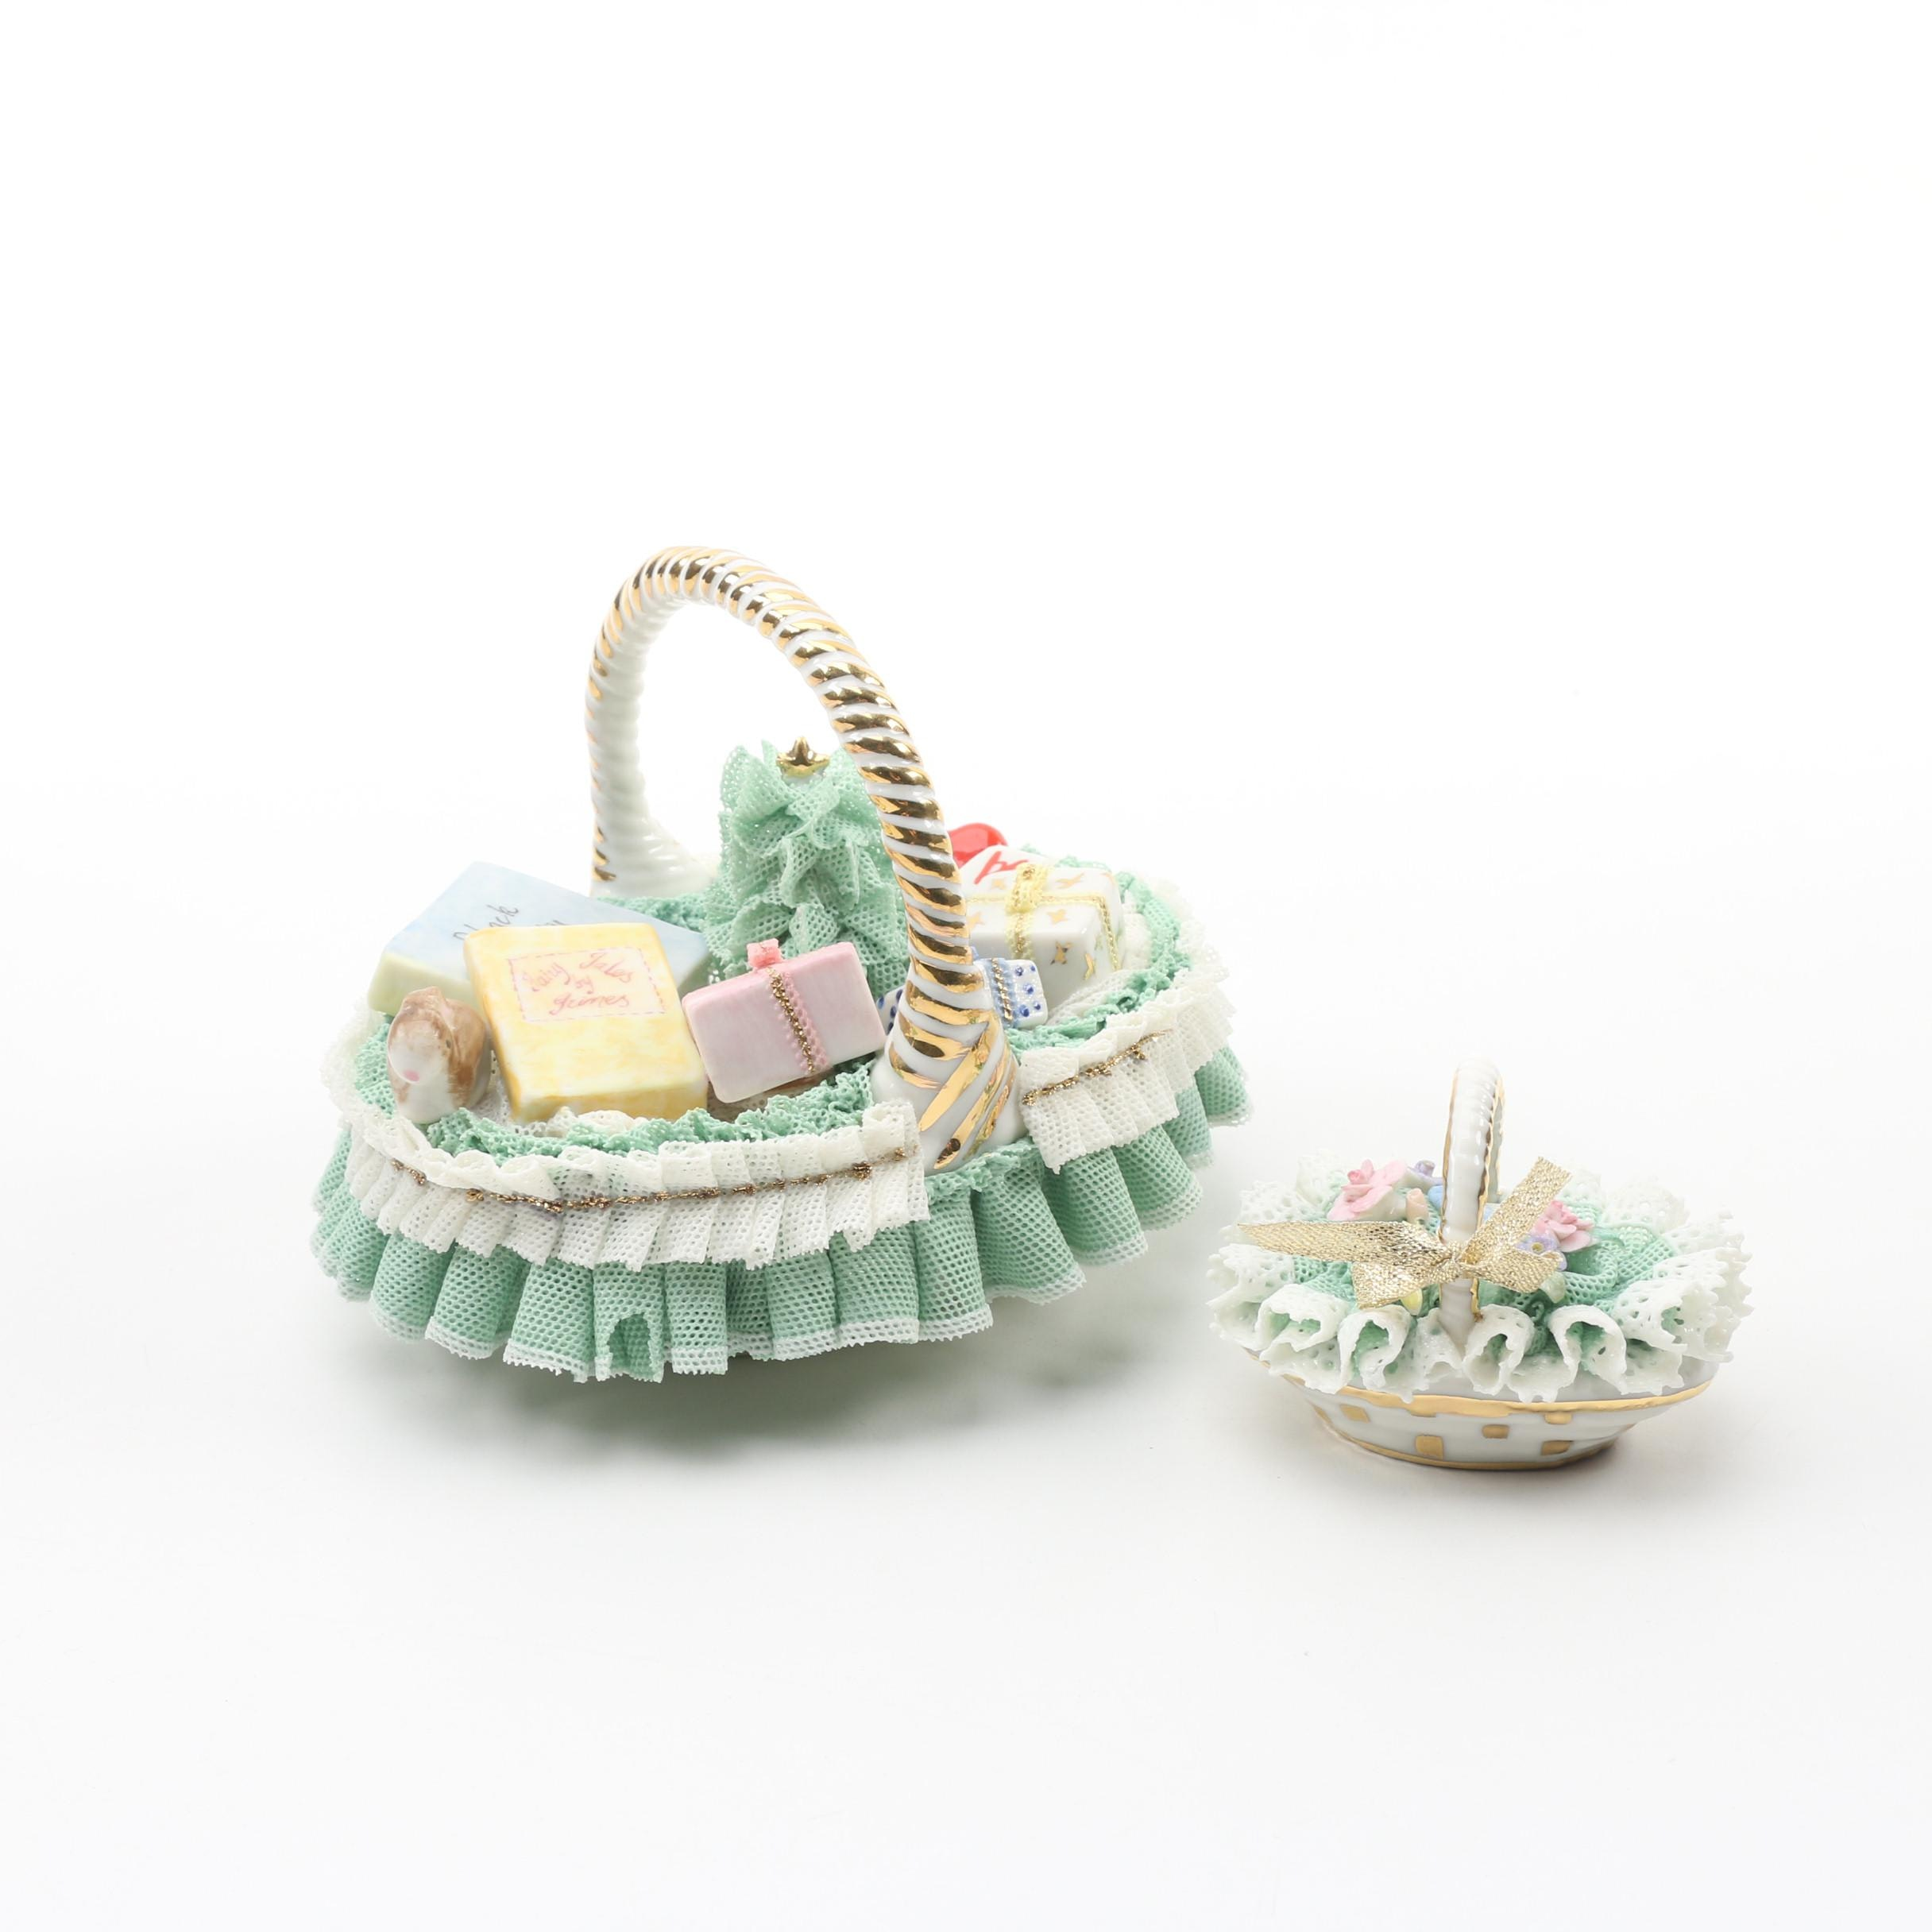 Irish Dresden Porcelain Holiday Basket Figurines